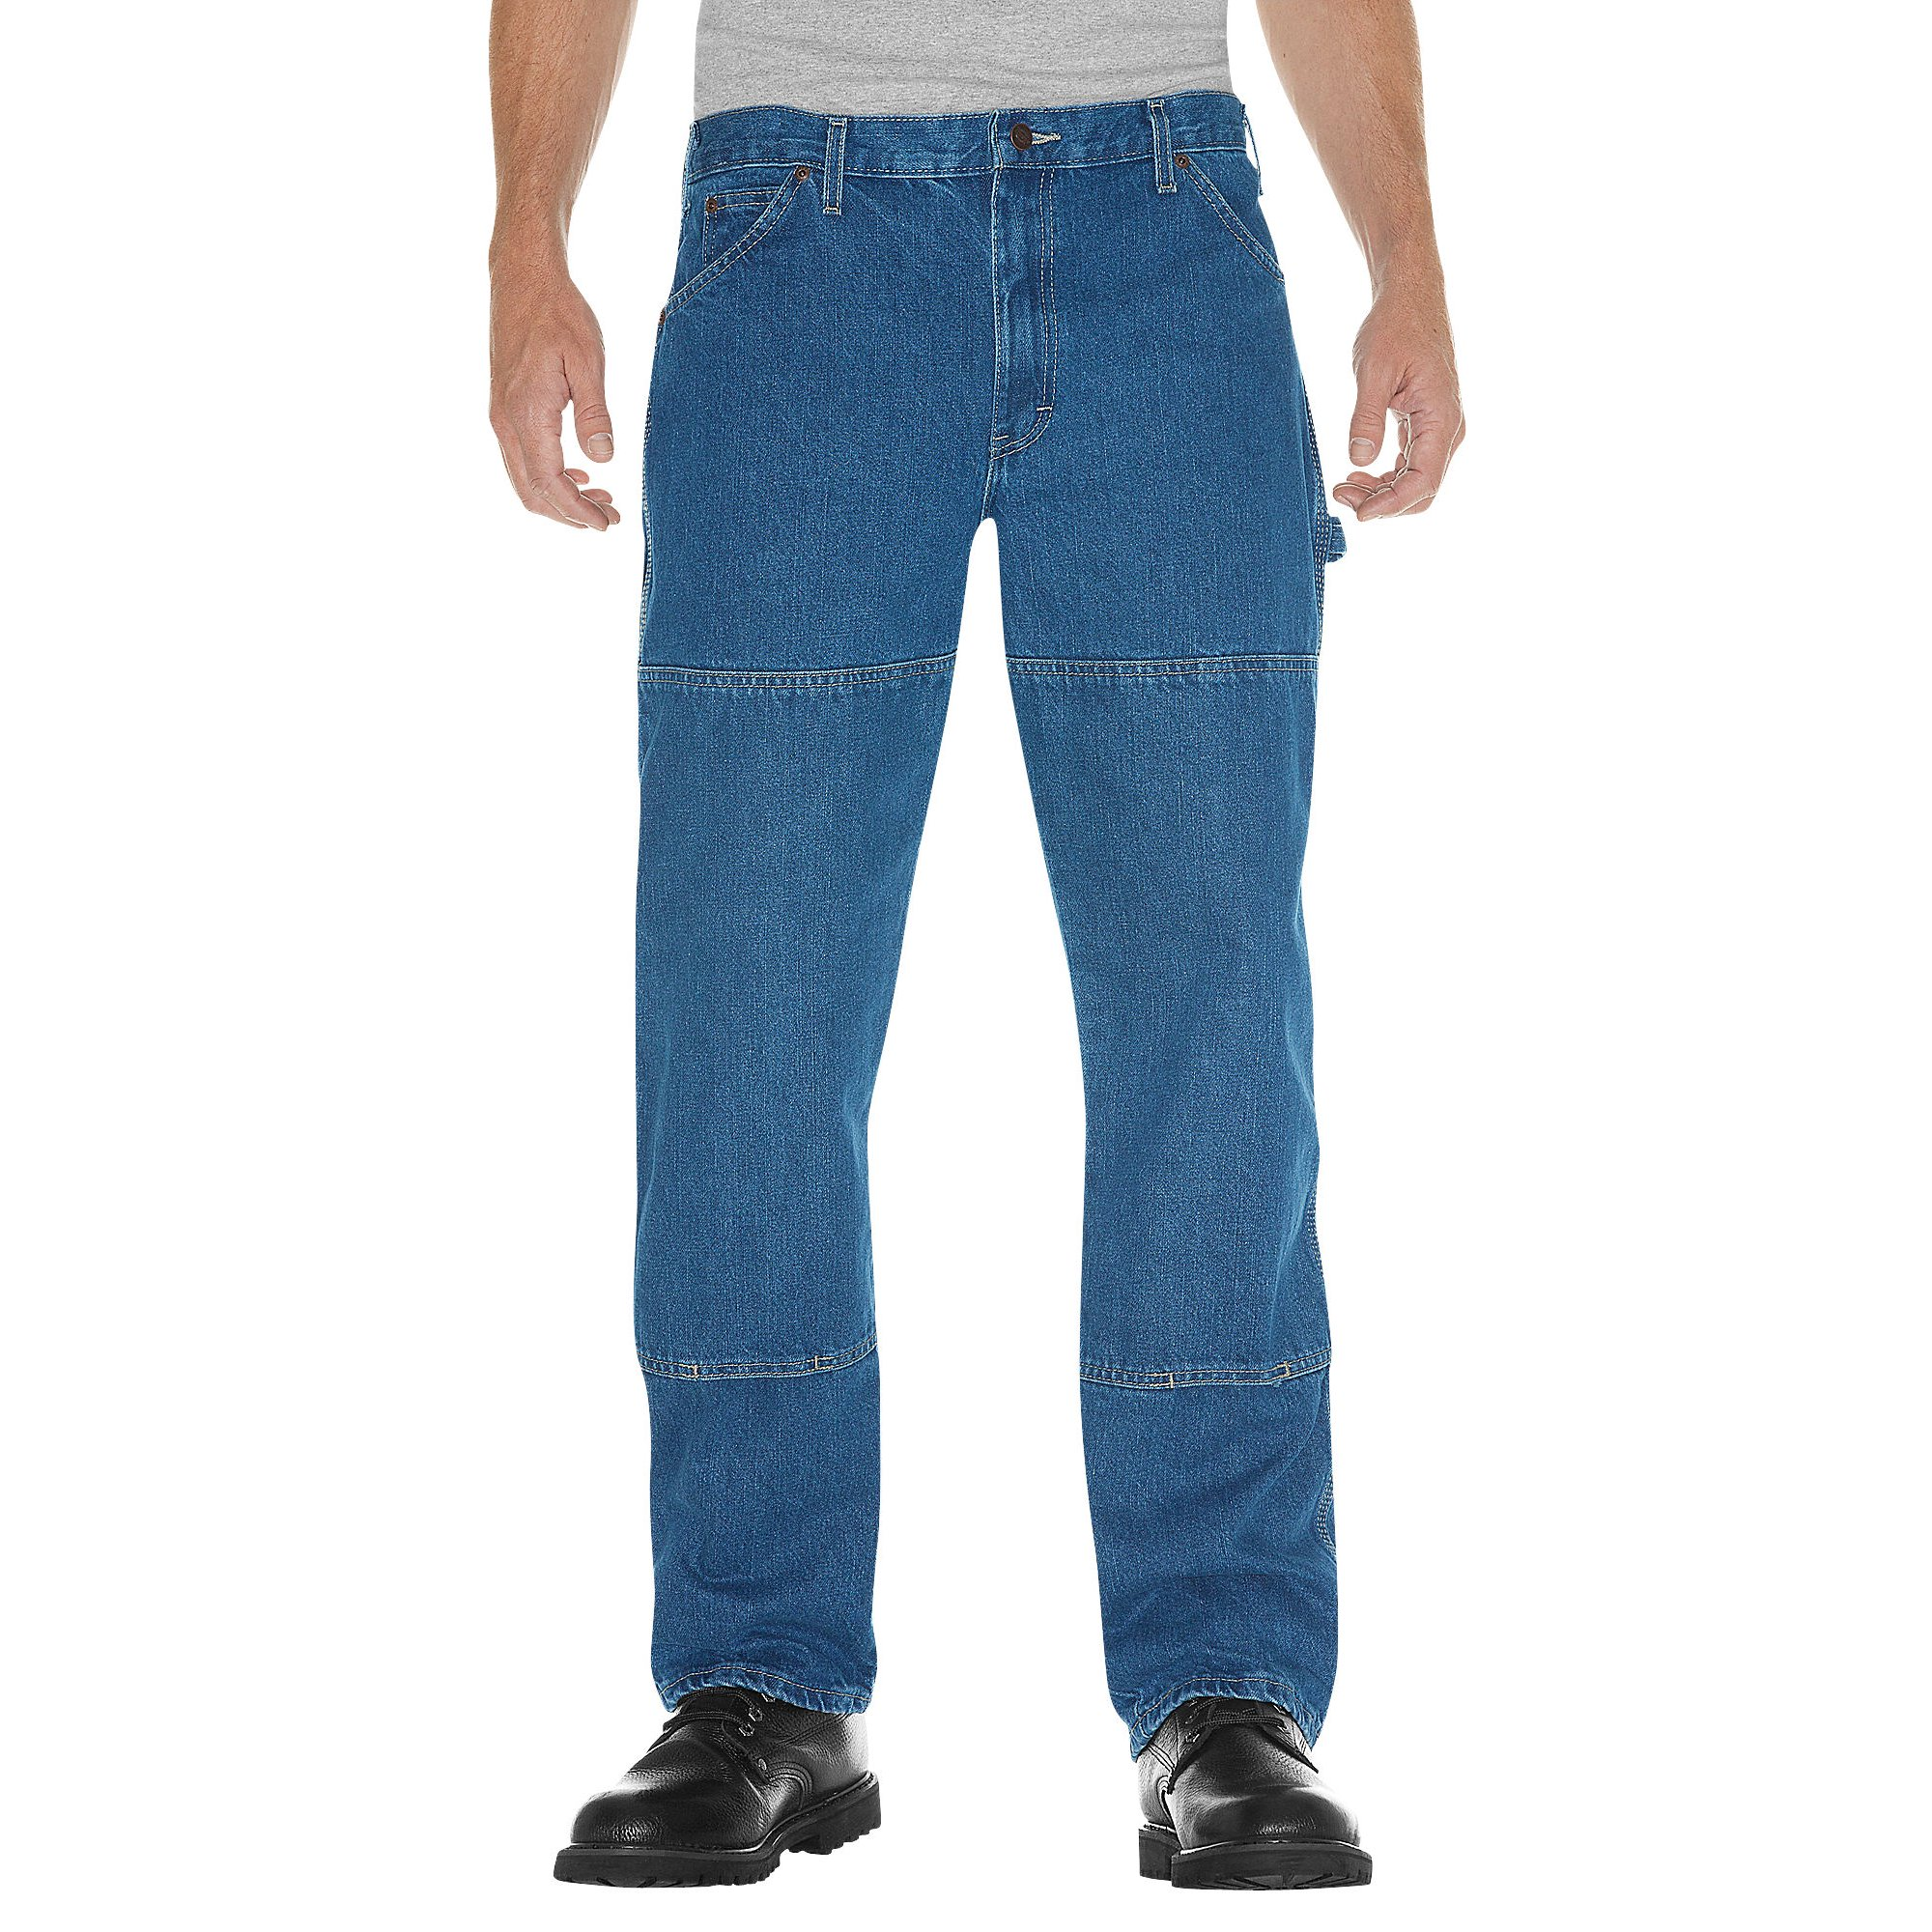 a97eaf771e0 Dickies Mens Relaxed Fit Double Knee Carpenter Denim Jeans, 44W x 30L